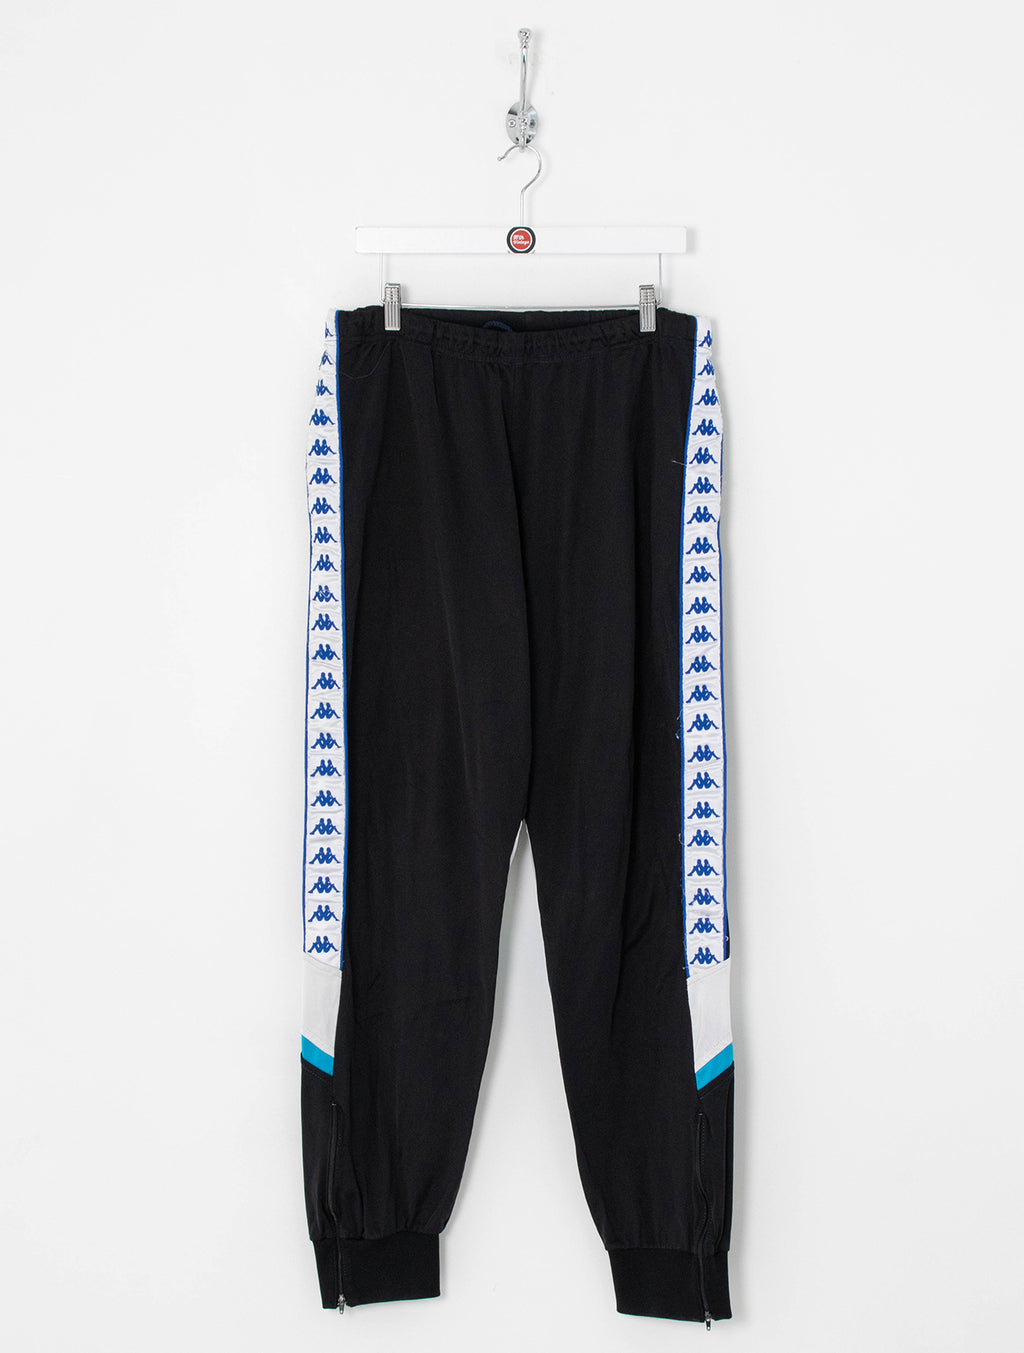 Kappa Track Bottoms (XL)